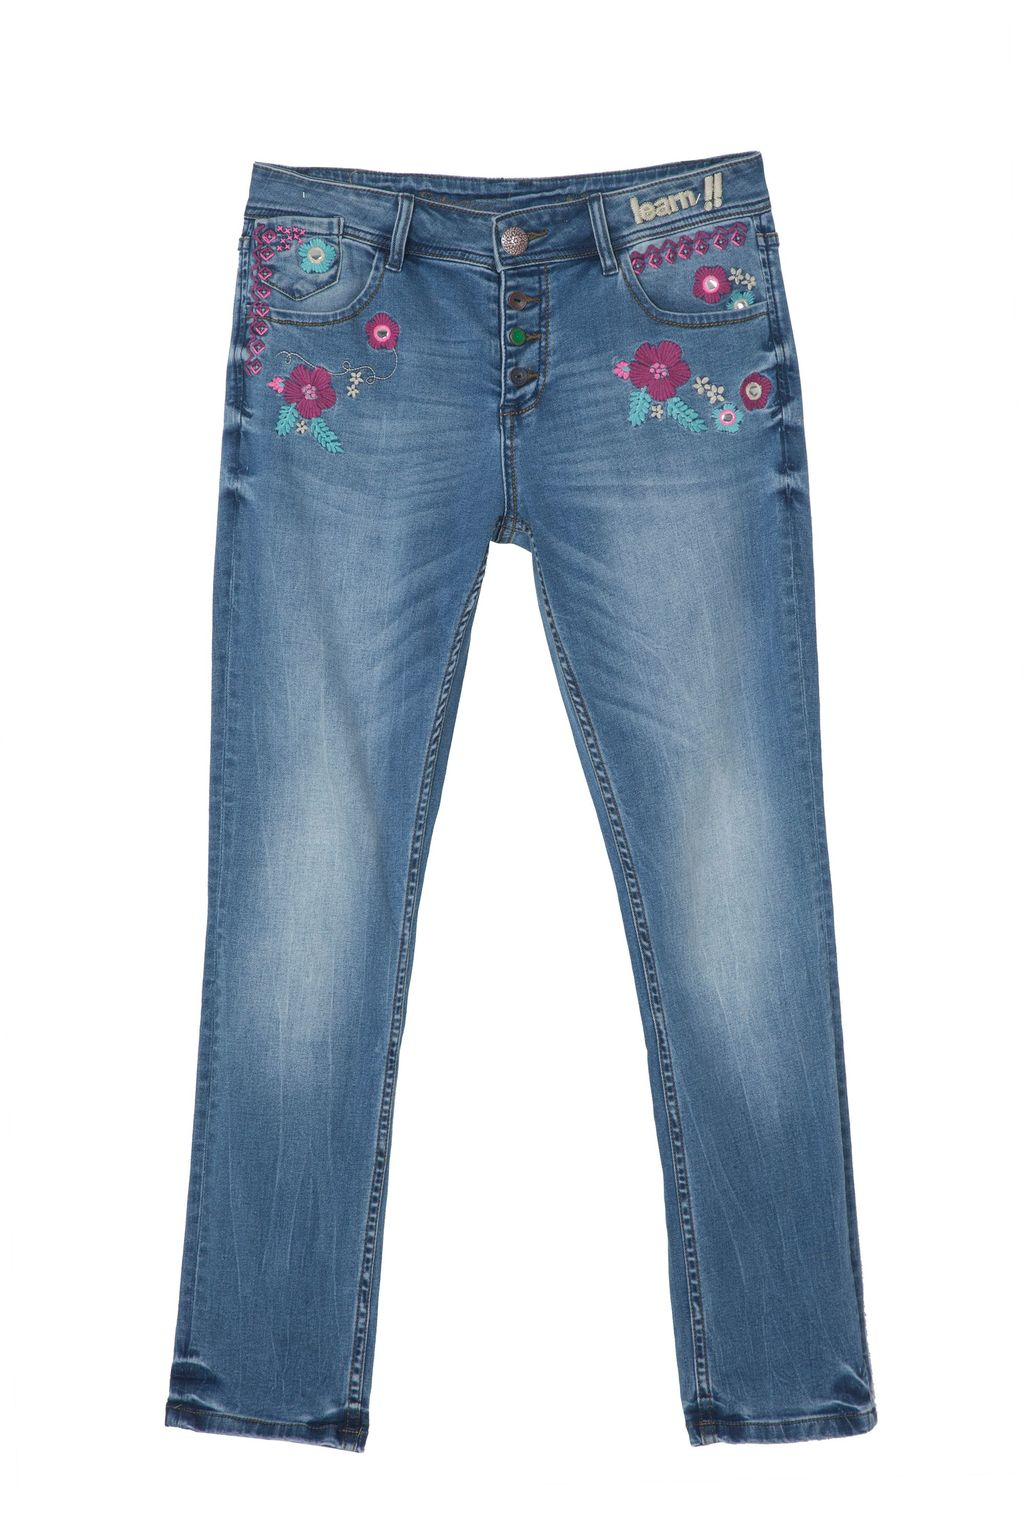 Ethnic Denim, Blue - length: standard; waist: low rise; pocket detail: traditional 5 pocket; style: slim leg; secondary colour: pink; predominant colour: denim; occasions: casual; fibres: cotton - stretch; texture group: denim; pattern type: fabric; pattern: florals; embellishment: embroidered; pattern size: standard (bottom); season: s/s 2016; wardrobe: highlight